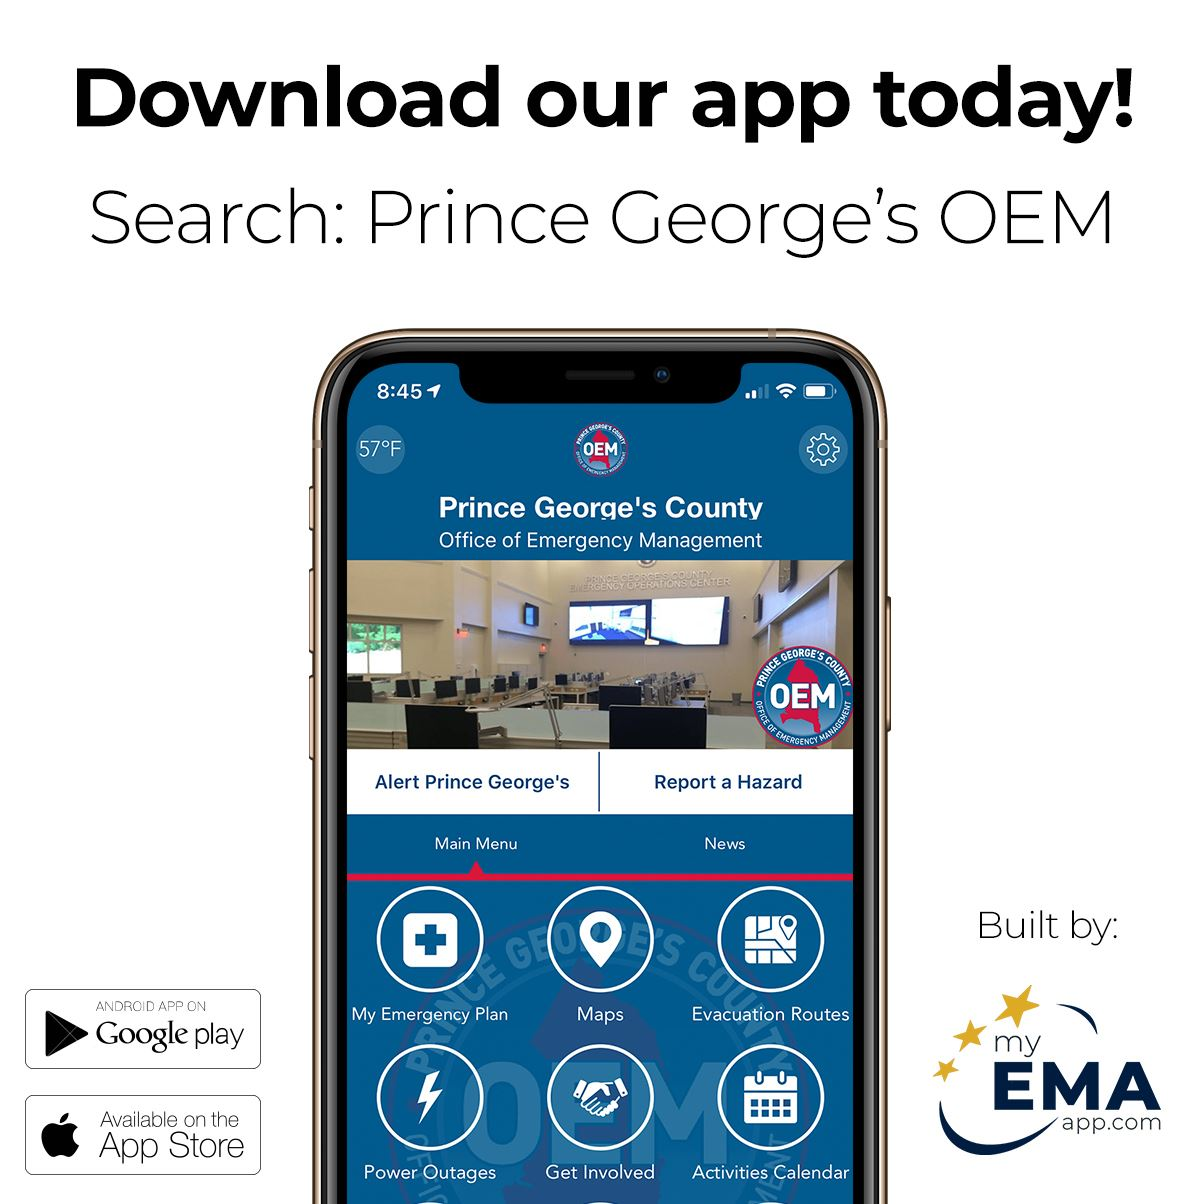 Download our App Today! Search: Prince George's OEM